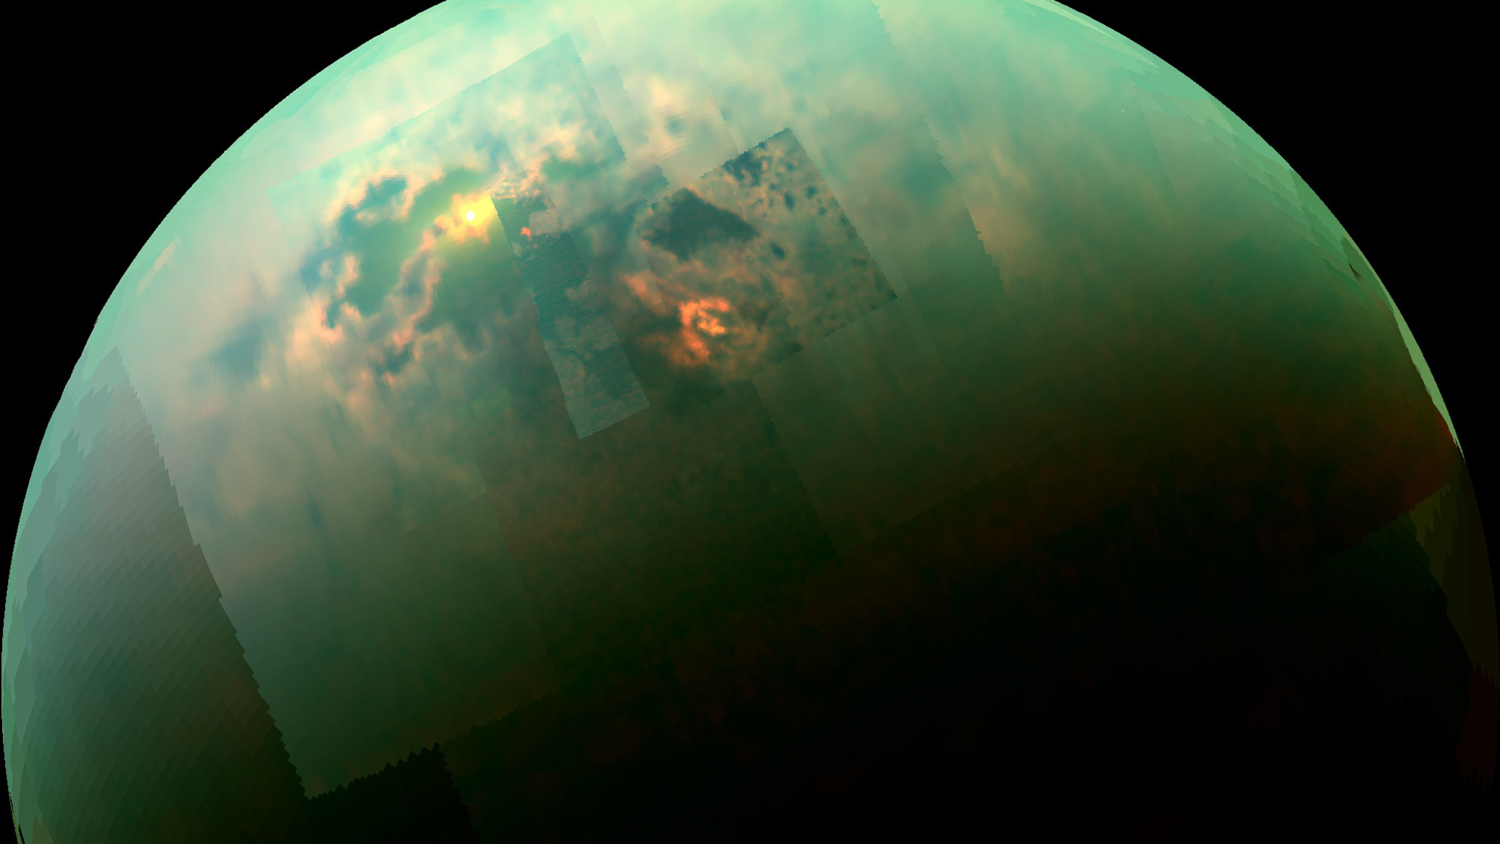 Giant rainbows and showers every 29 years scientists told what the weather is like on Titan